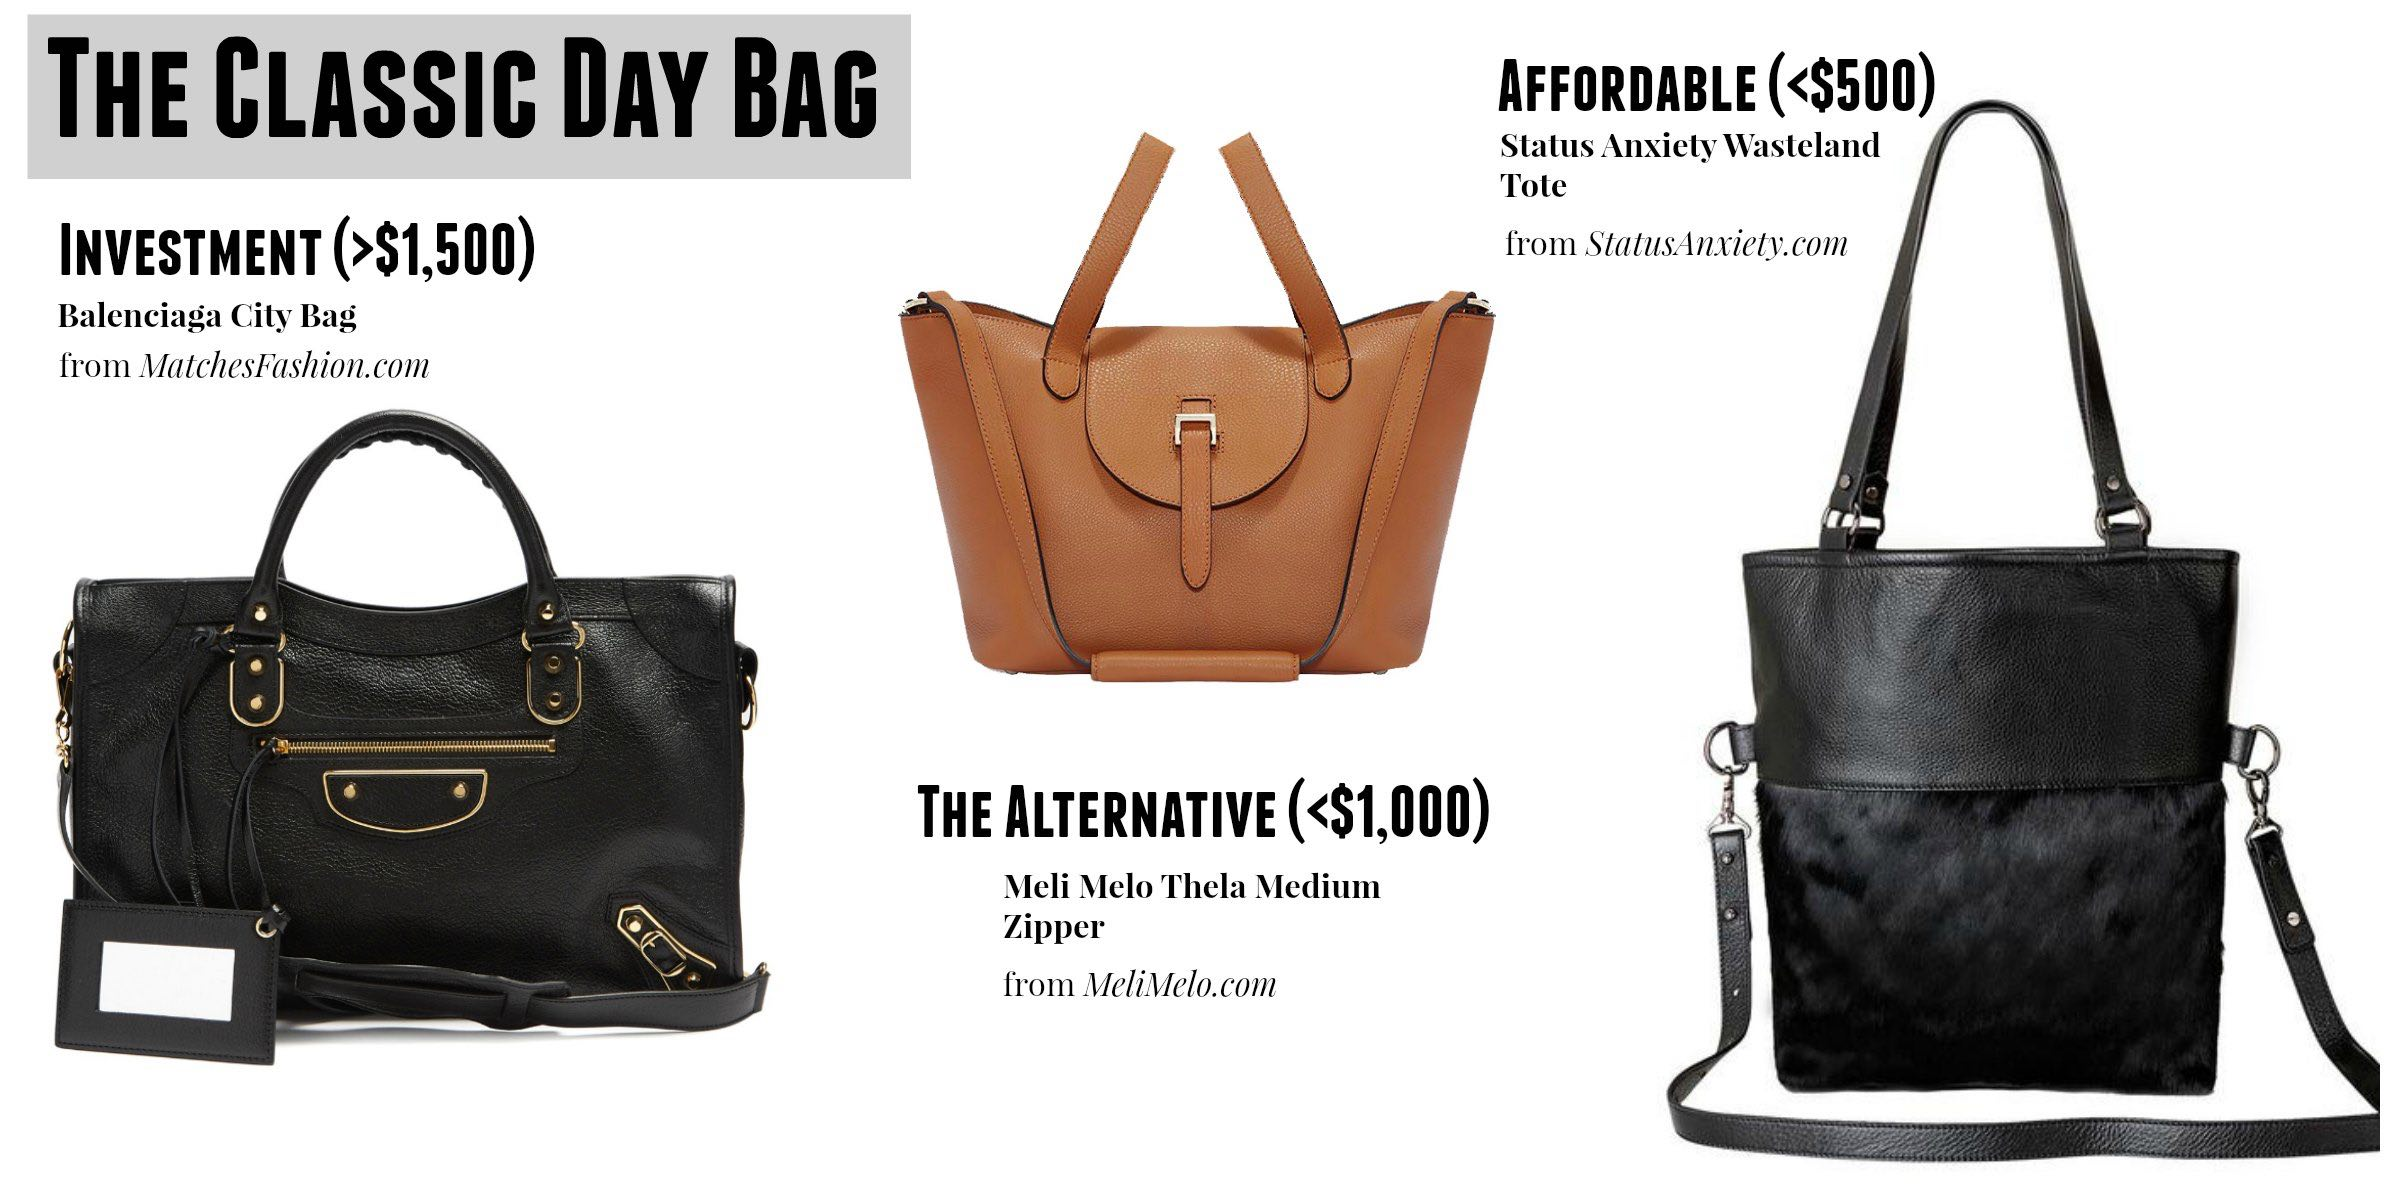 The Essential Classic Day Bags